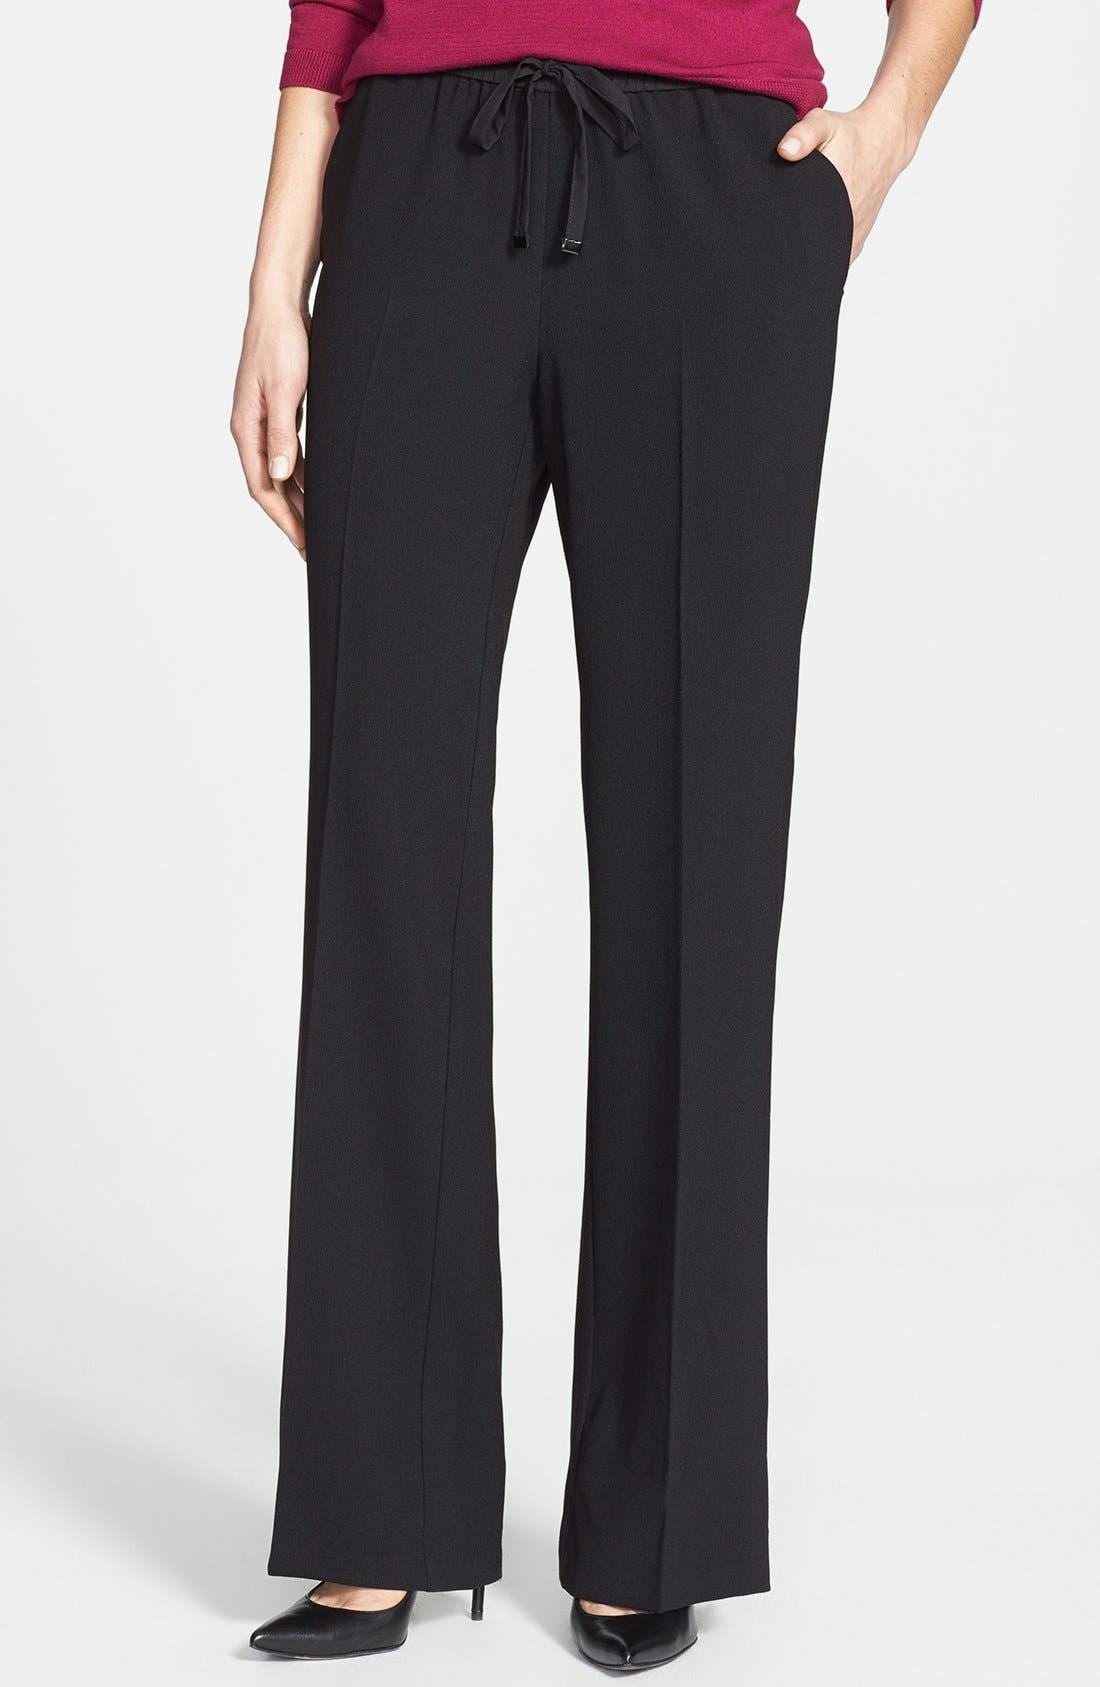 Alternate Image 1 Selected - Kenneth Cole New York 'Maya' Drawstring Waist Pants